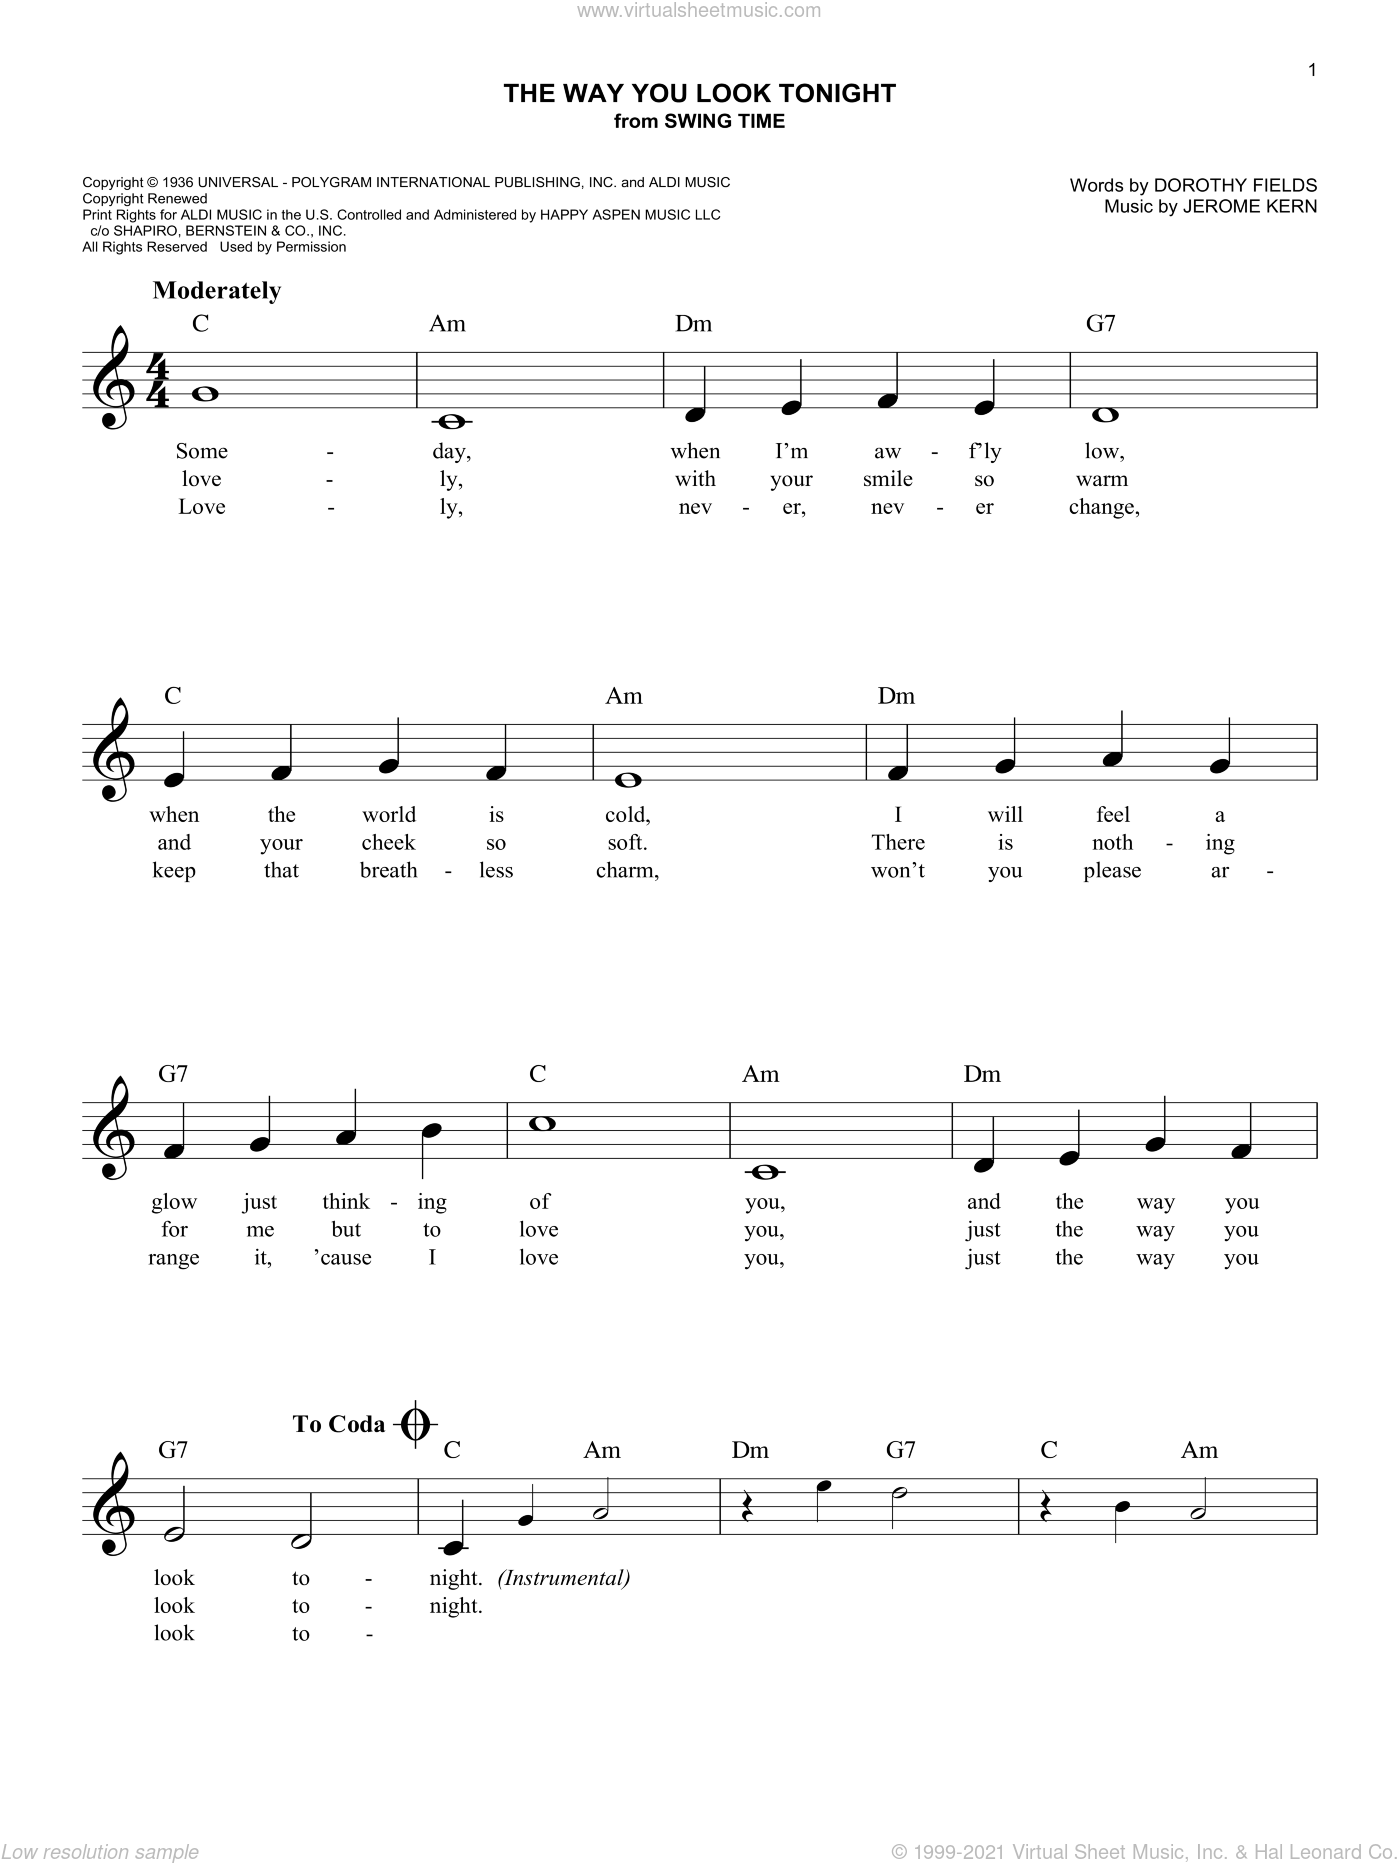 The Way You Look Tonight sheet music for voice and other instruments (fake book) by Jerome Kern and Dorothy Fields, wedding score, intermediate skill level